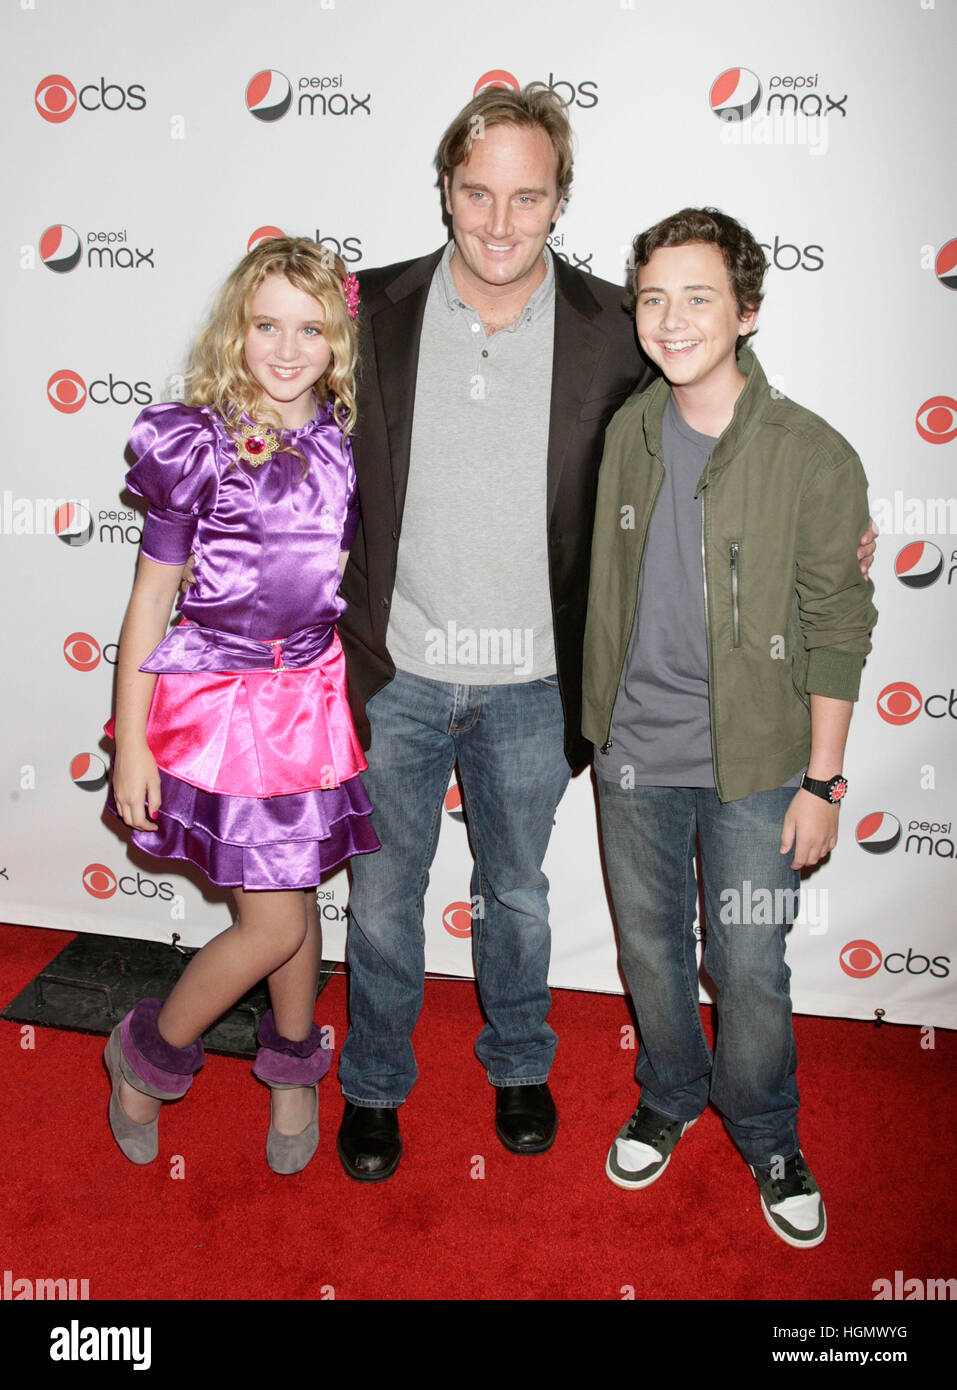 Jay Mohr, center, with Kathryn Newton and Ryan Malgarini at the CBS Premiere Party in Los Angeles, California, on - Stock Image